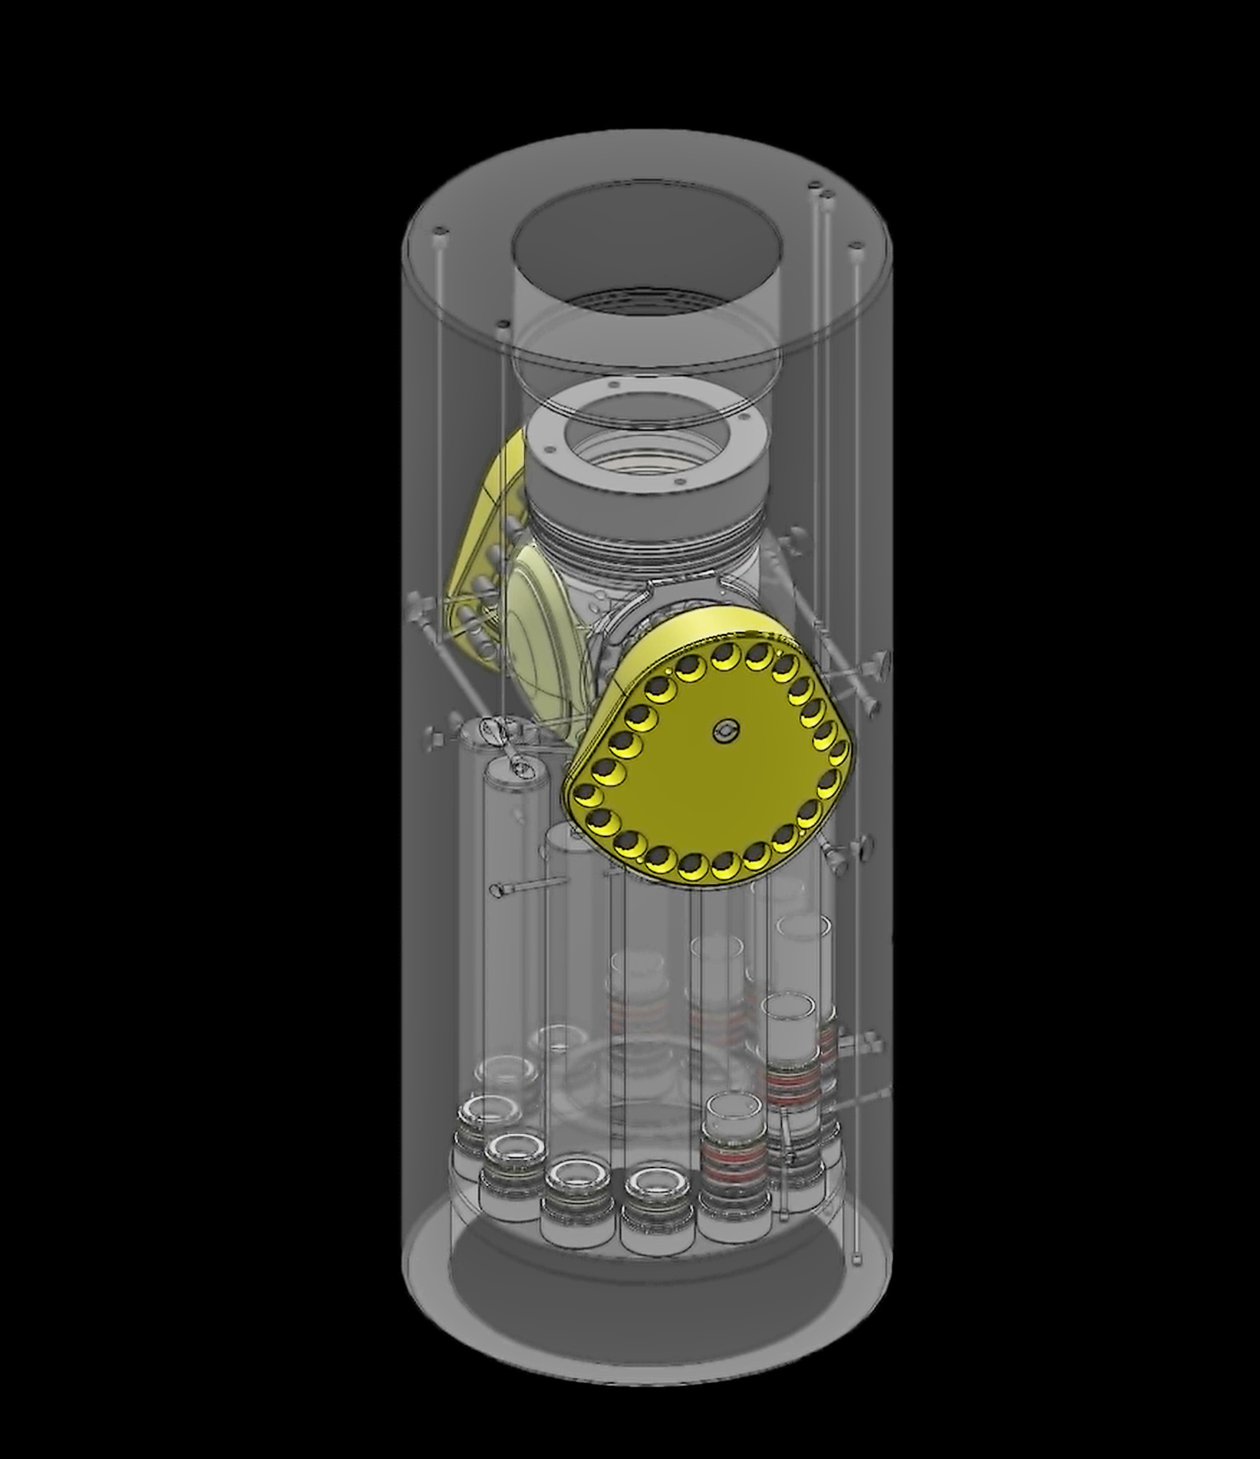 Interventek launches Revolution PowerPlus safety valve technology at Subsea Expo